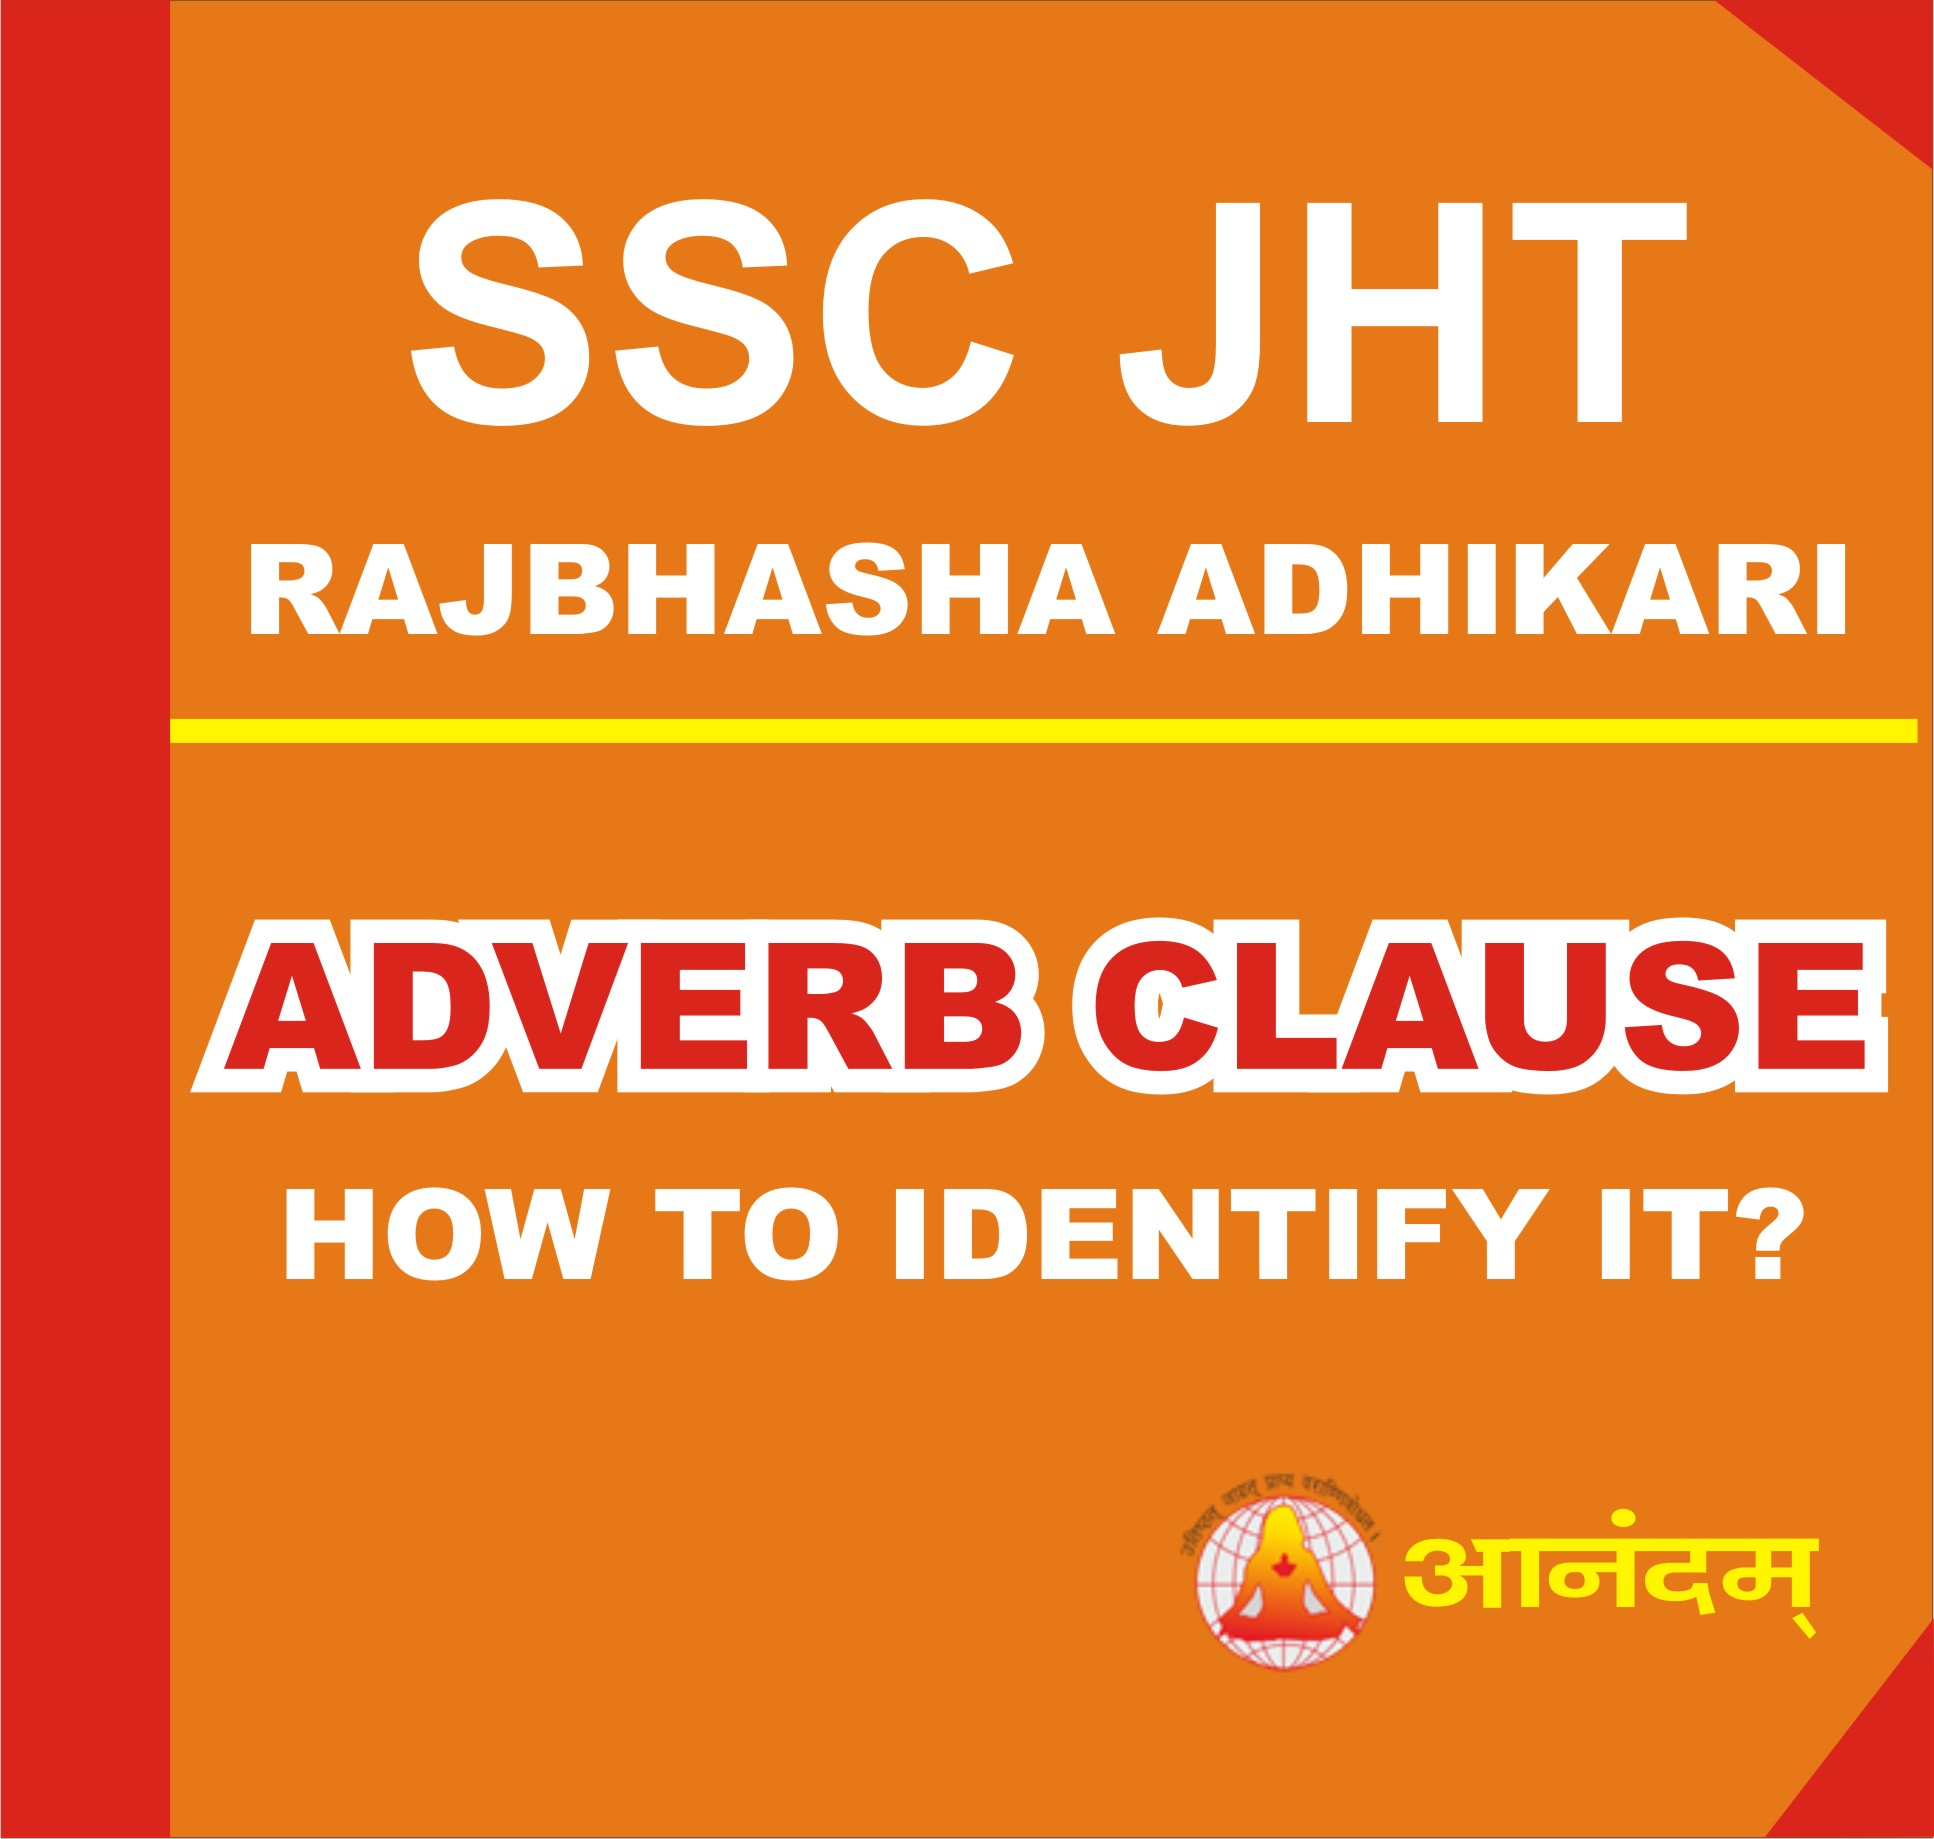 ADVERB CLAUSE FOR JTET CTET UPSC